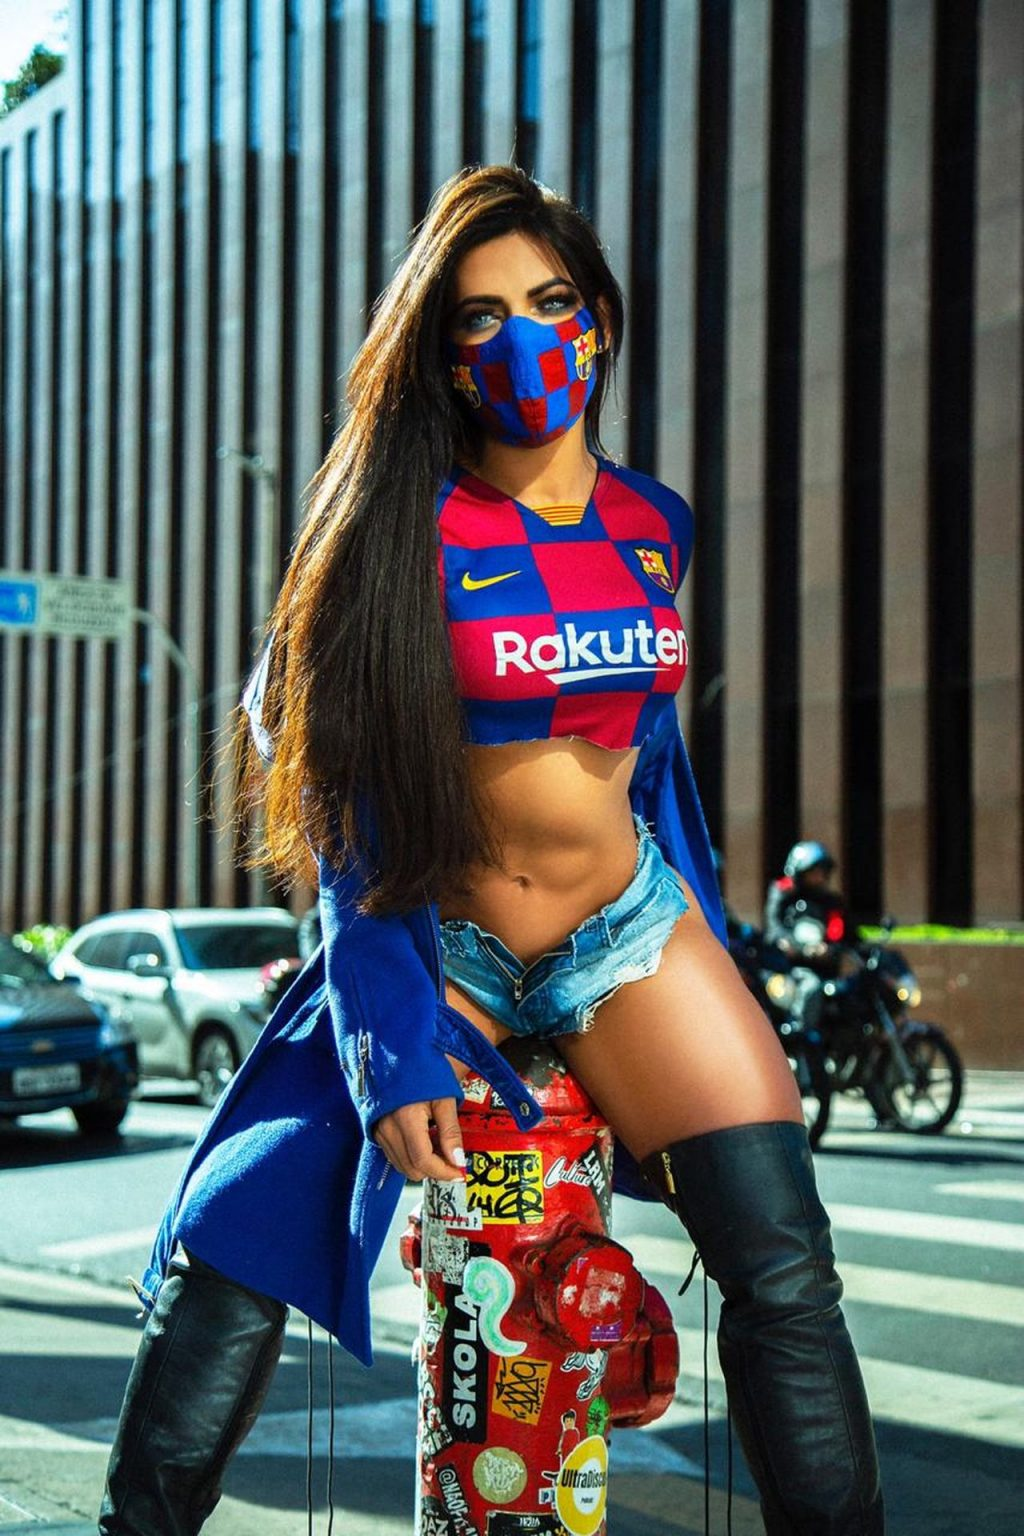 Suzy Cortez Dons Kinky Boots to Support Her Beloved FC Barcelona Amid Pandemic (6 Photos)